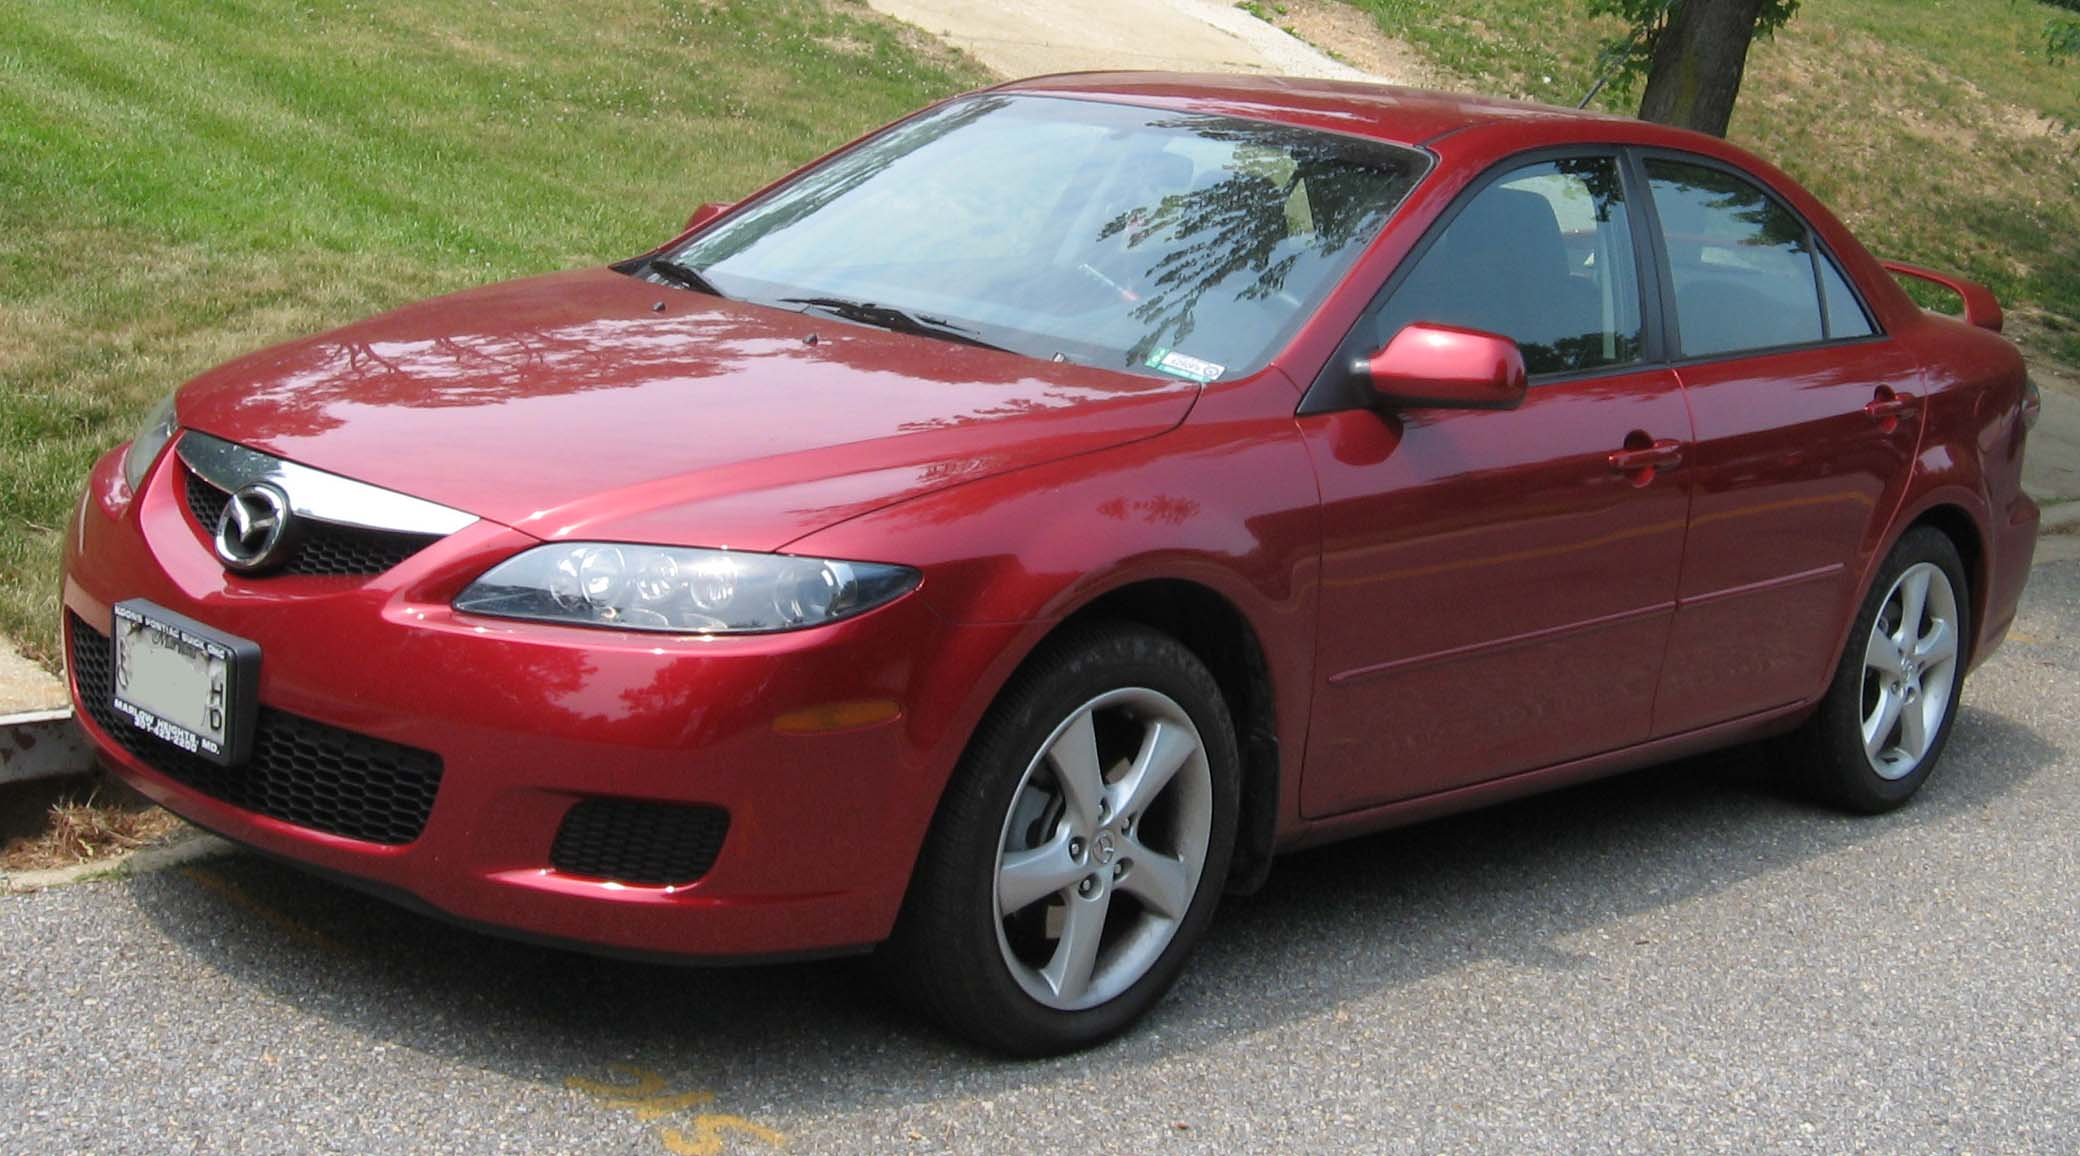 Mazda 626 2006: Amazing Pictures and Images – Look at the car